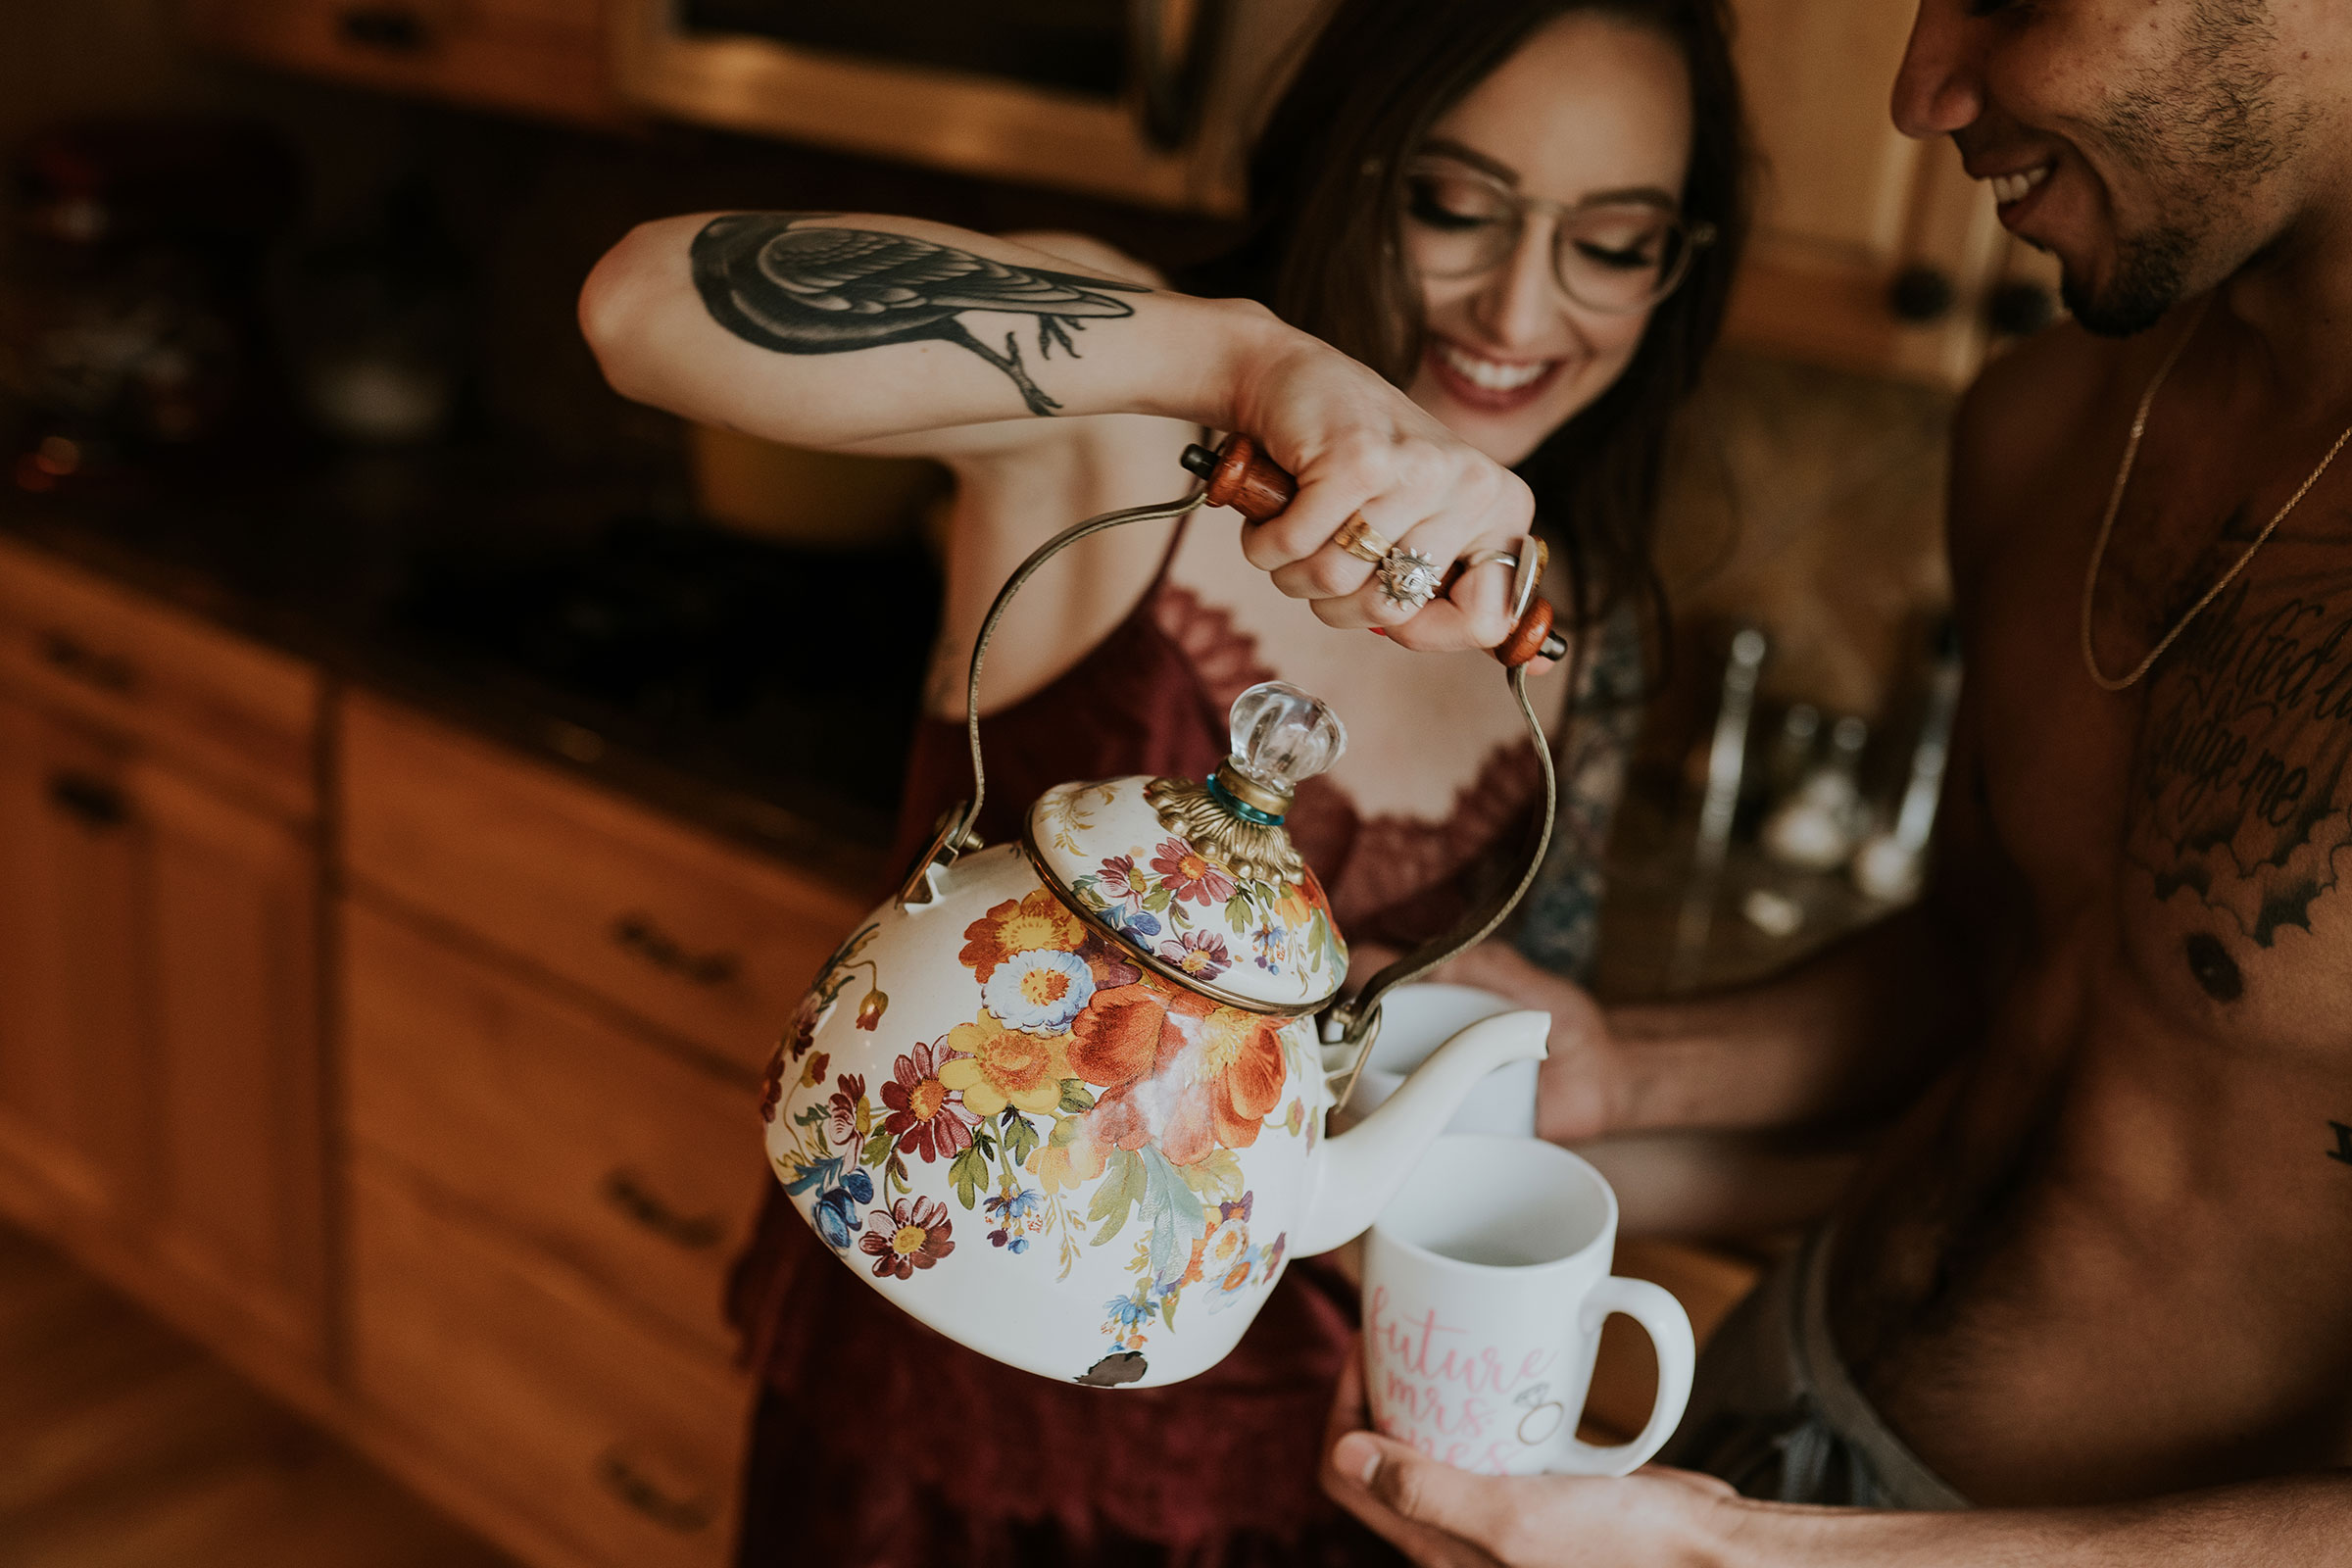 couple-pouring-tea-in-kitchen-engagement-desmoines-iowa-raelyn-ramey-photography.jpg